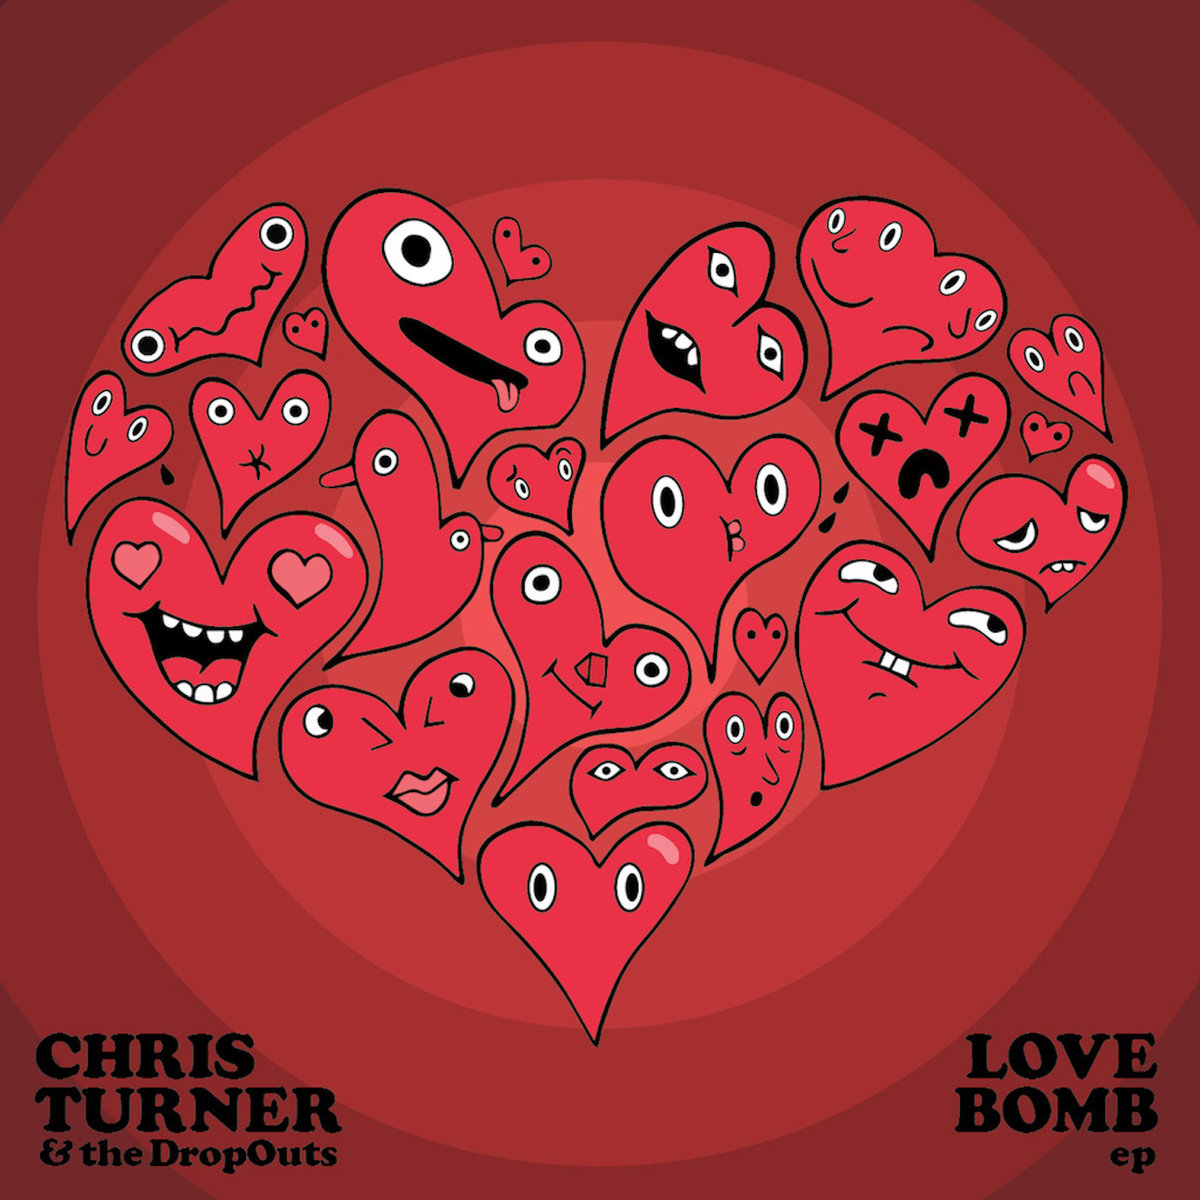 Chris Turner & the DropOuts - LOVE BOMB, the EP